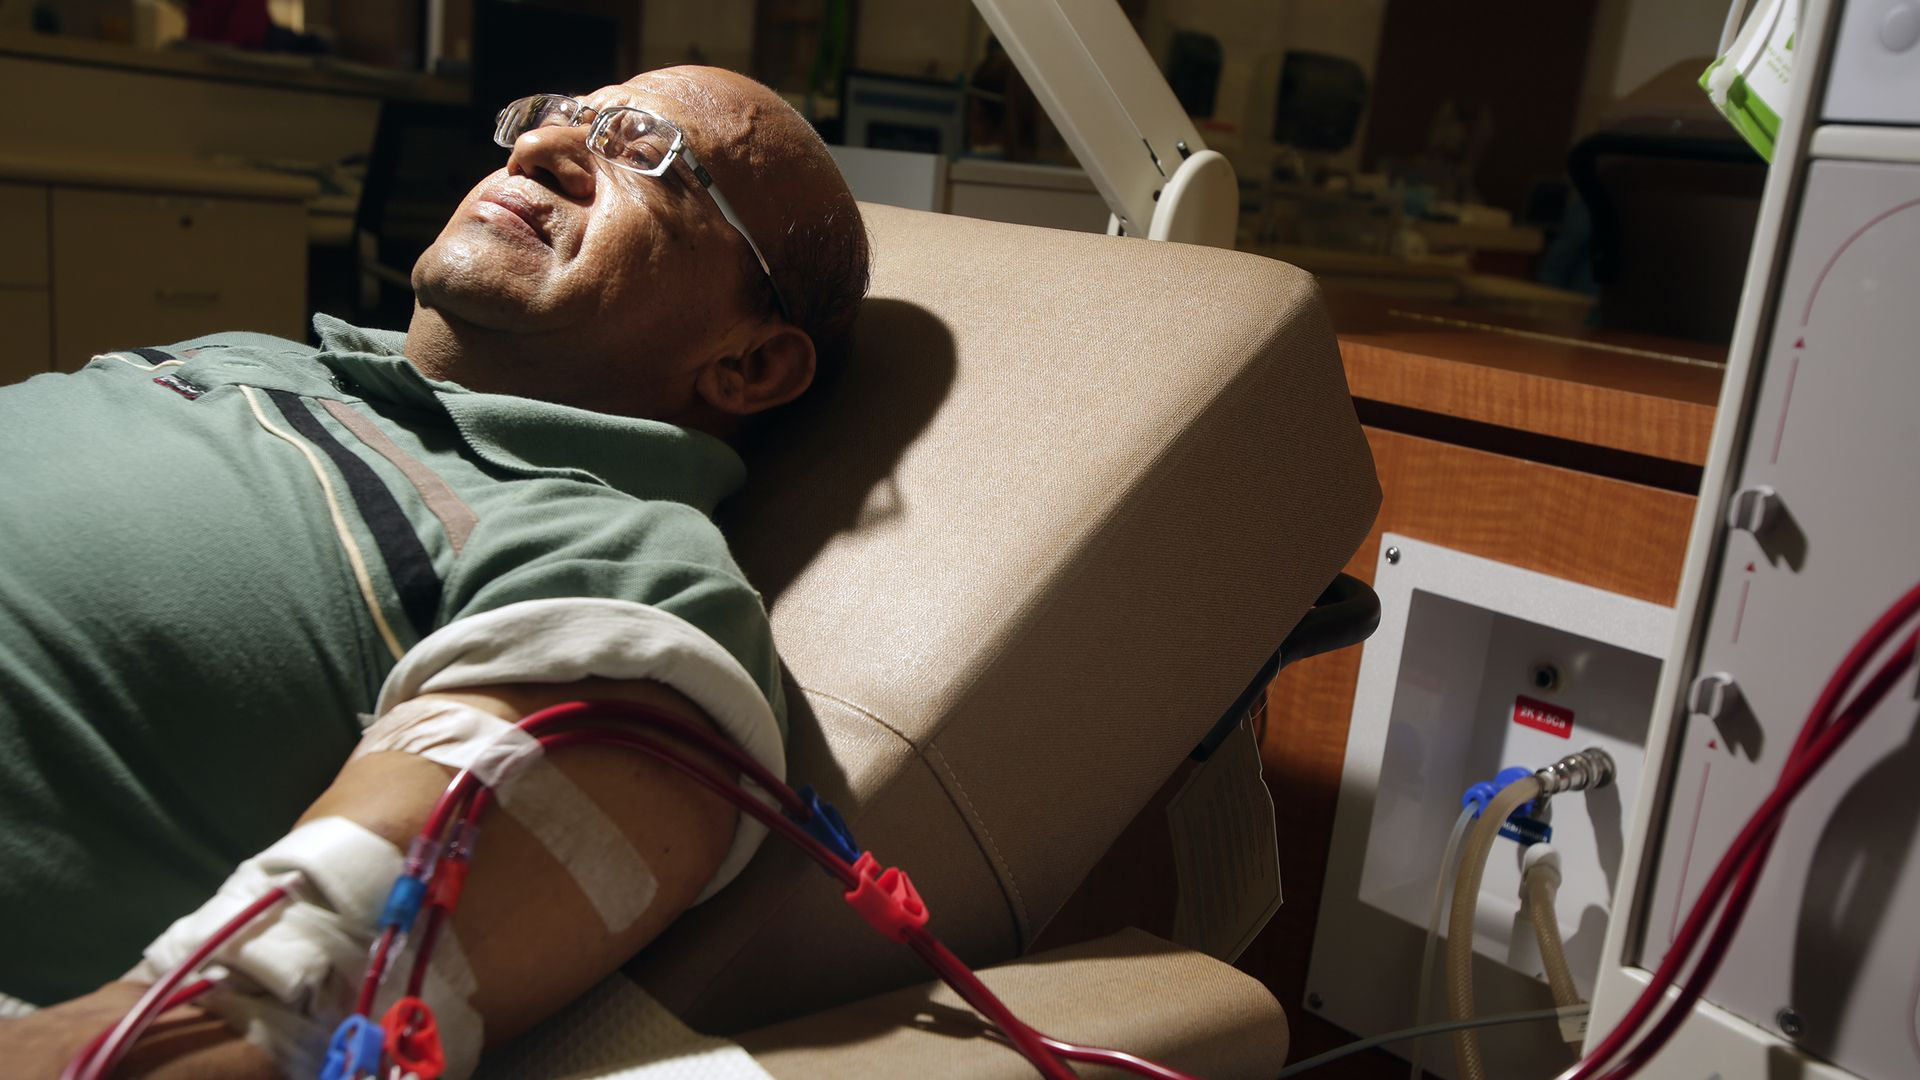 A man gets dialysis treatment at a DaVita center in California.